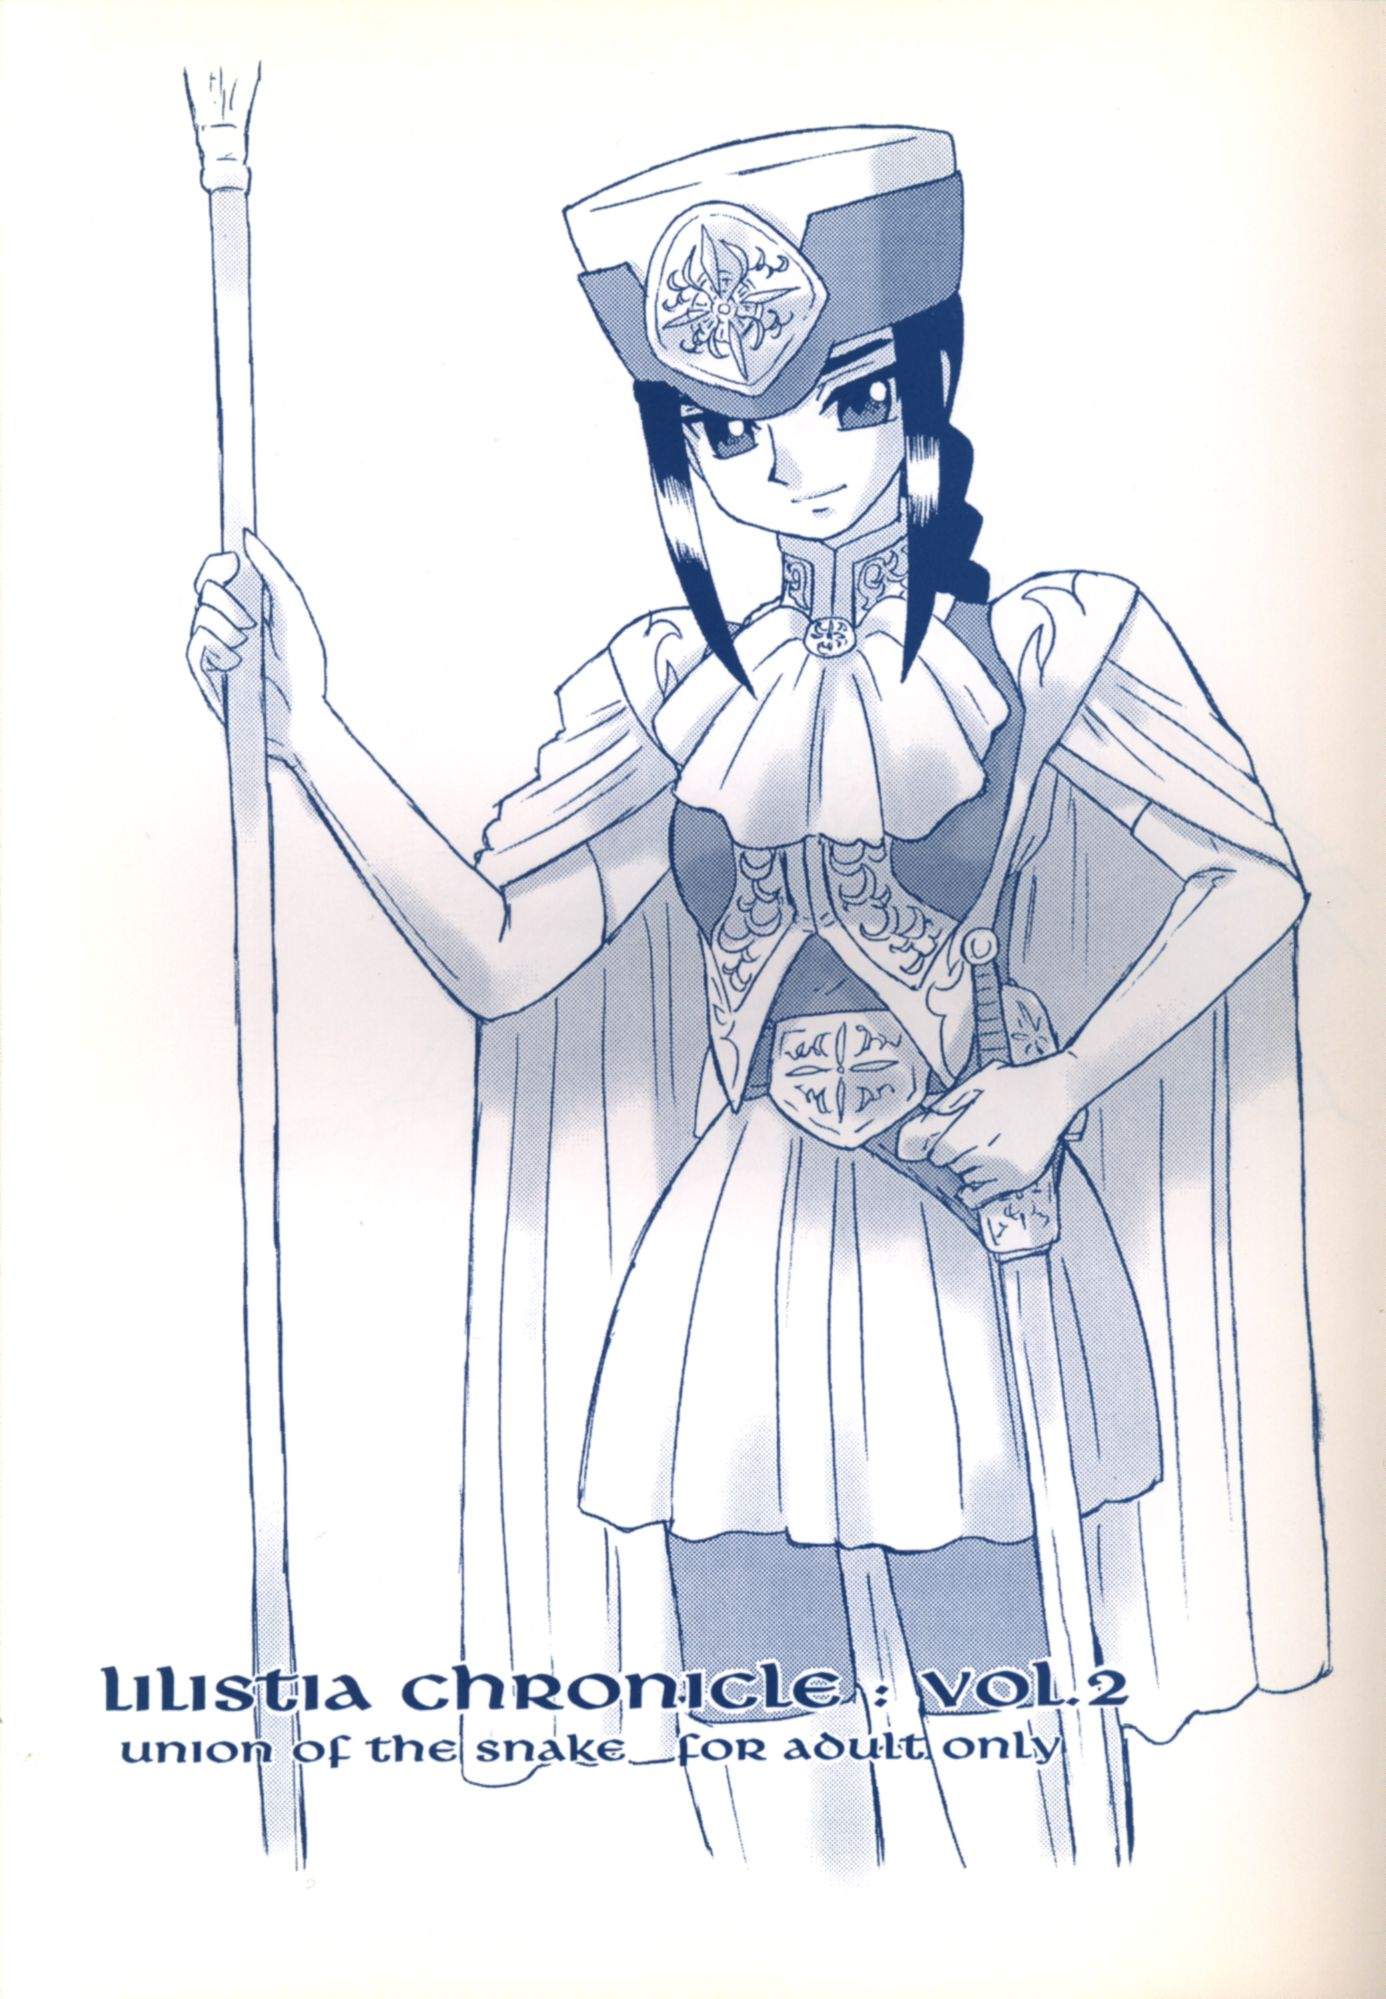 [Adult] Doujinshi - LiListia chRonicLE:VOL.2 / UNION OF THE SNAKE